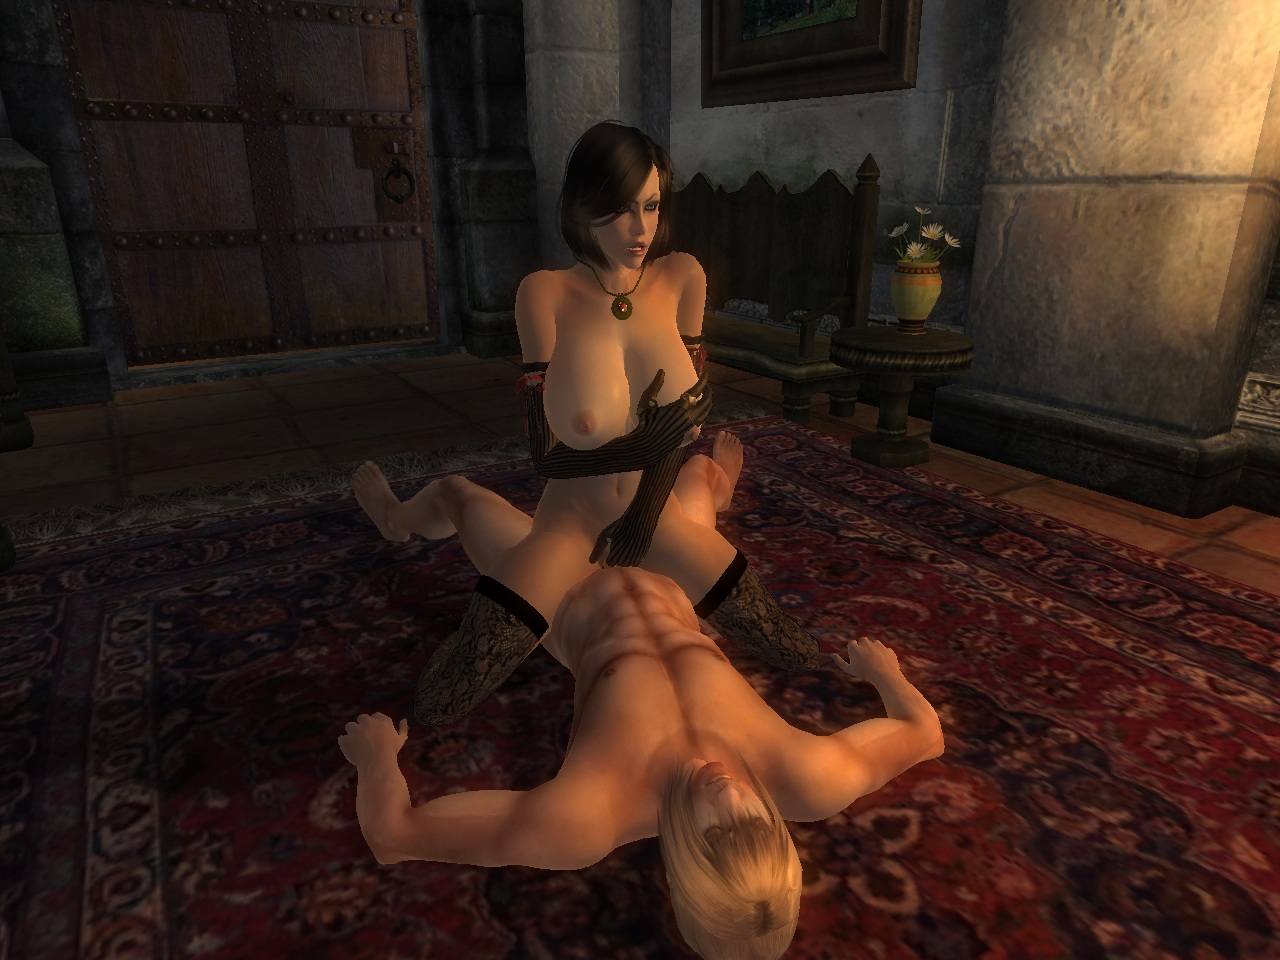 Oblivion adult mod youtube naked images